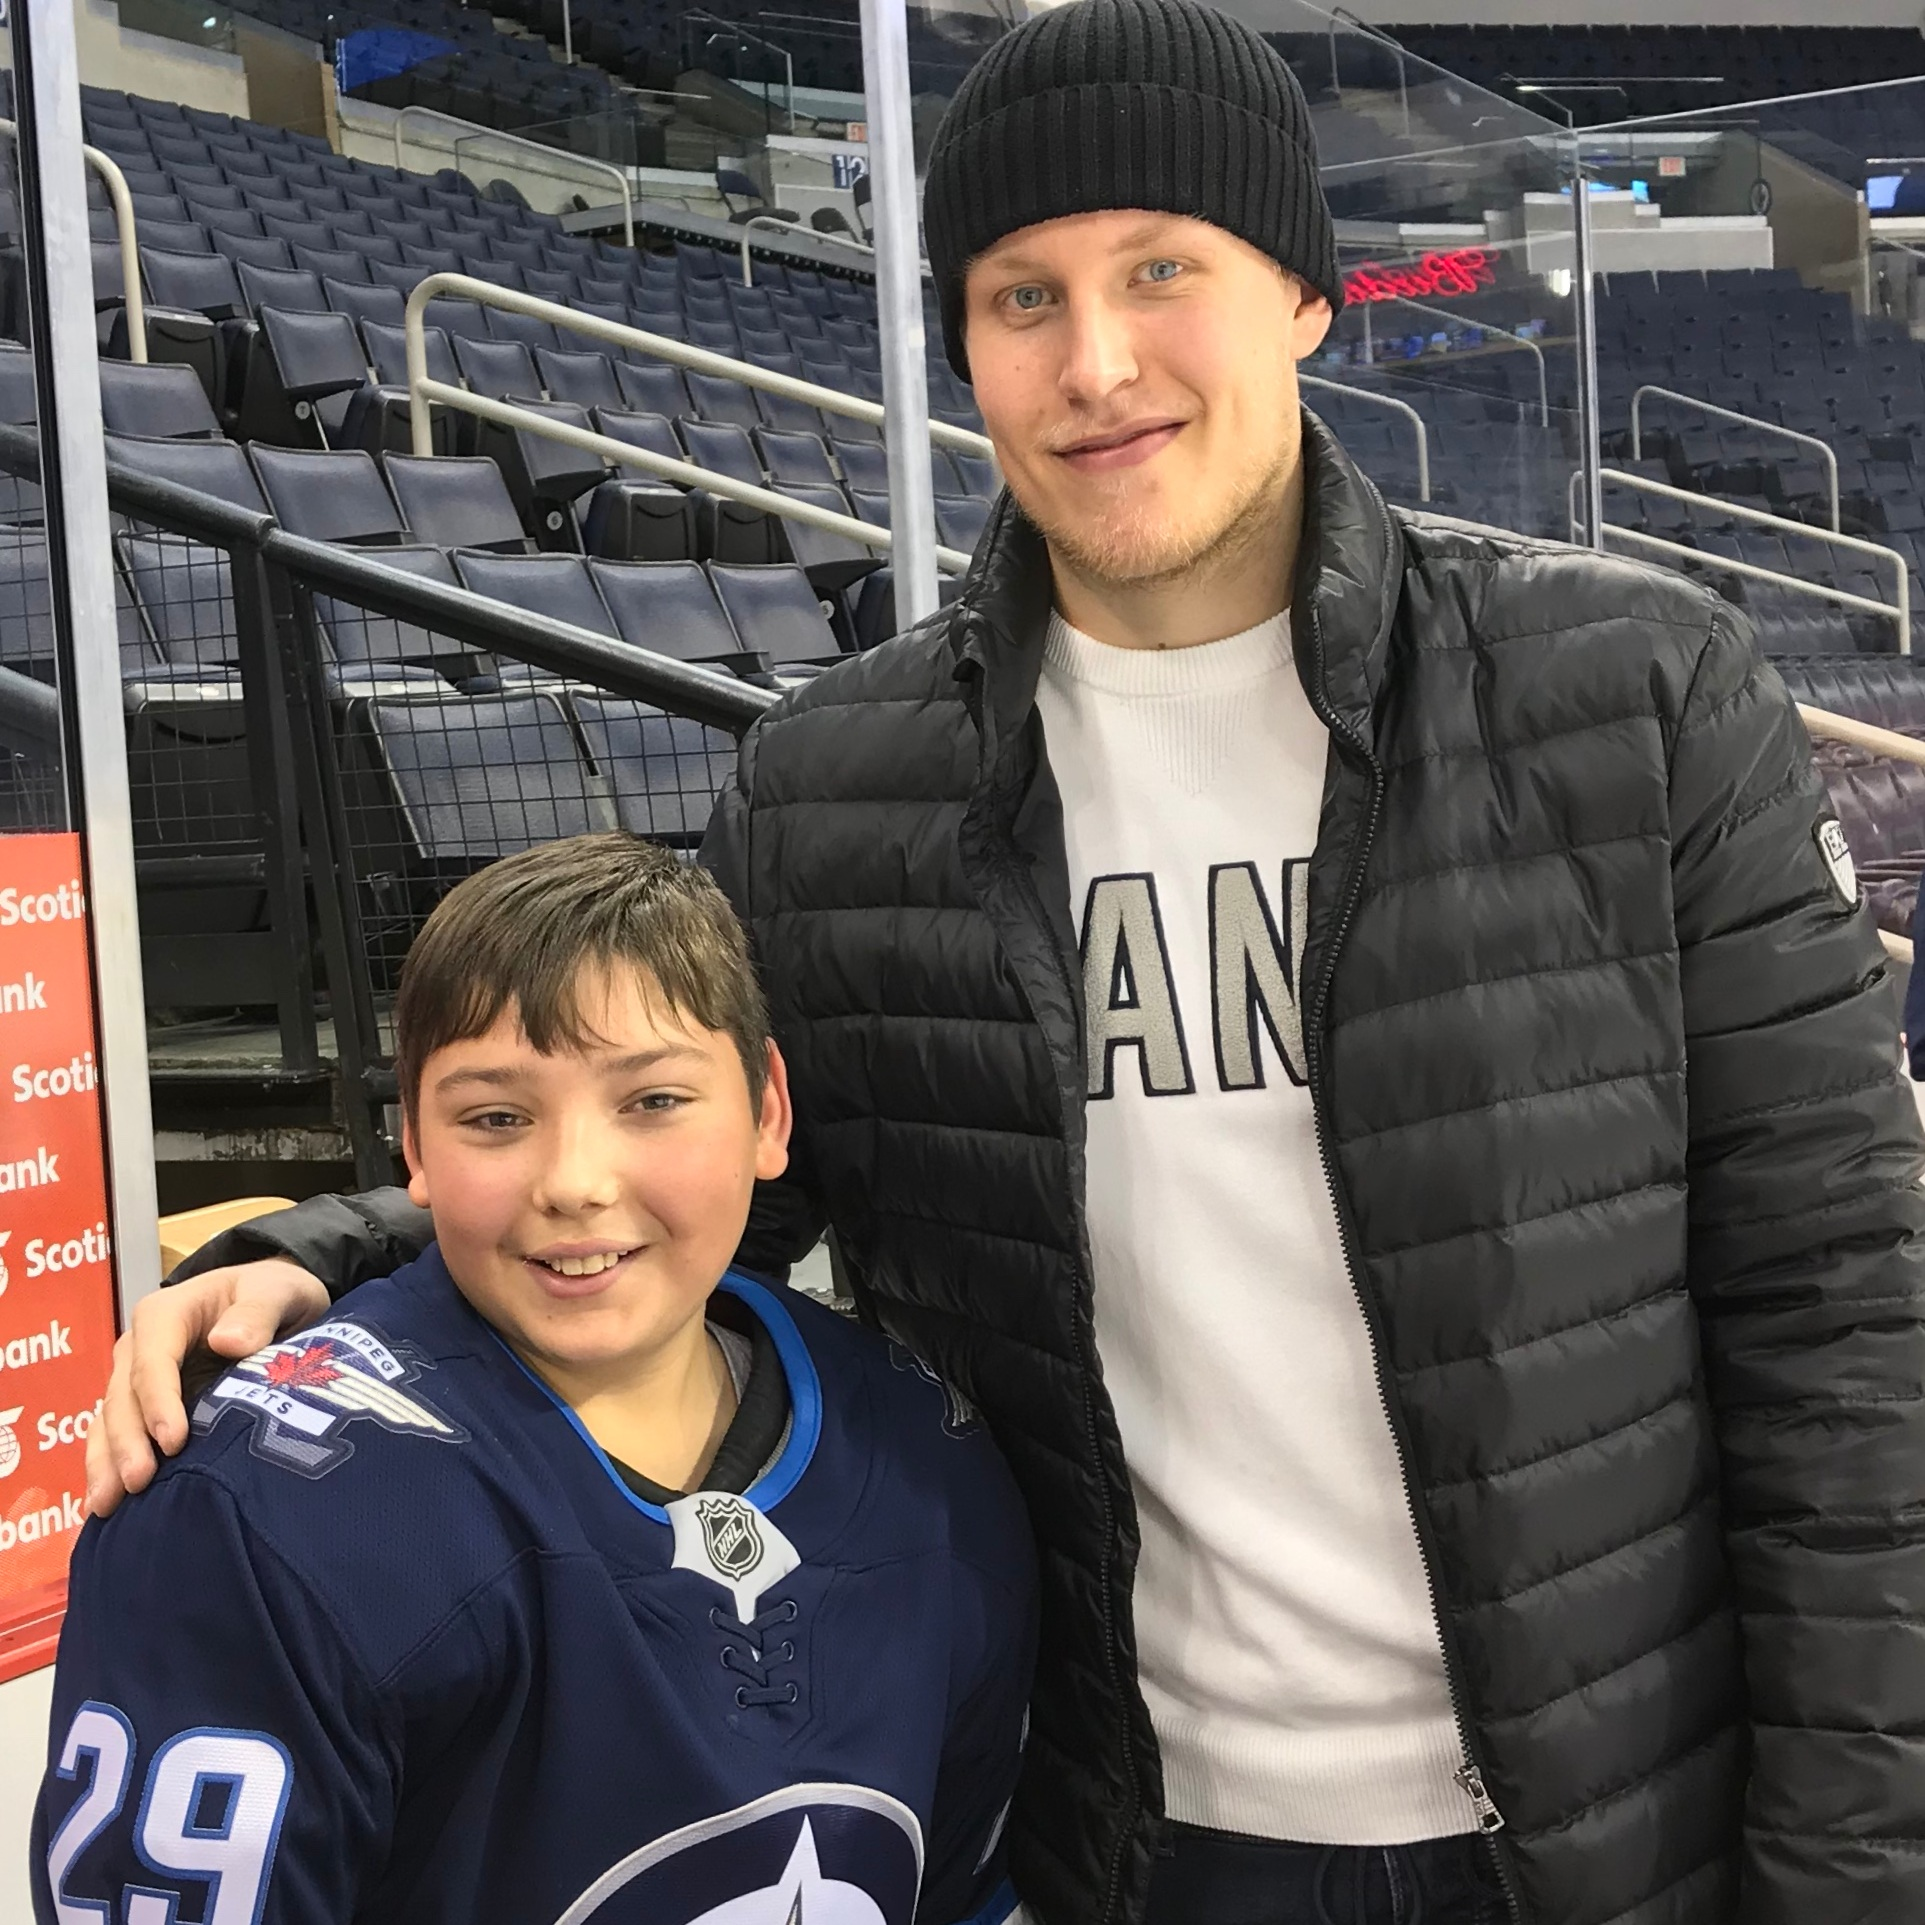 Pictured: Josh was a big part of making Dream Kid Eric's dream of meeting his favourite player, Patrik Laine, come true.